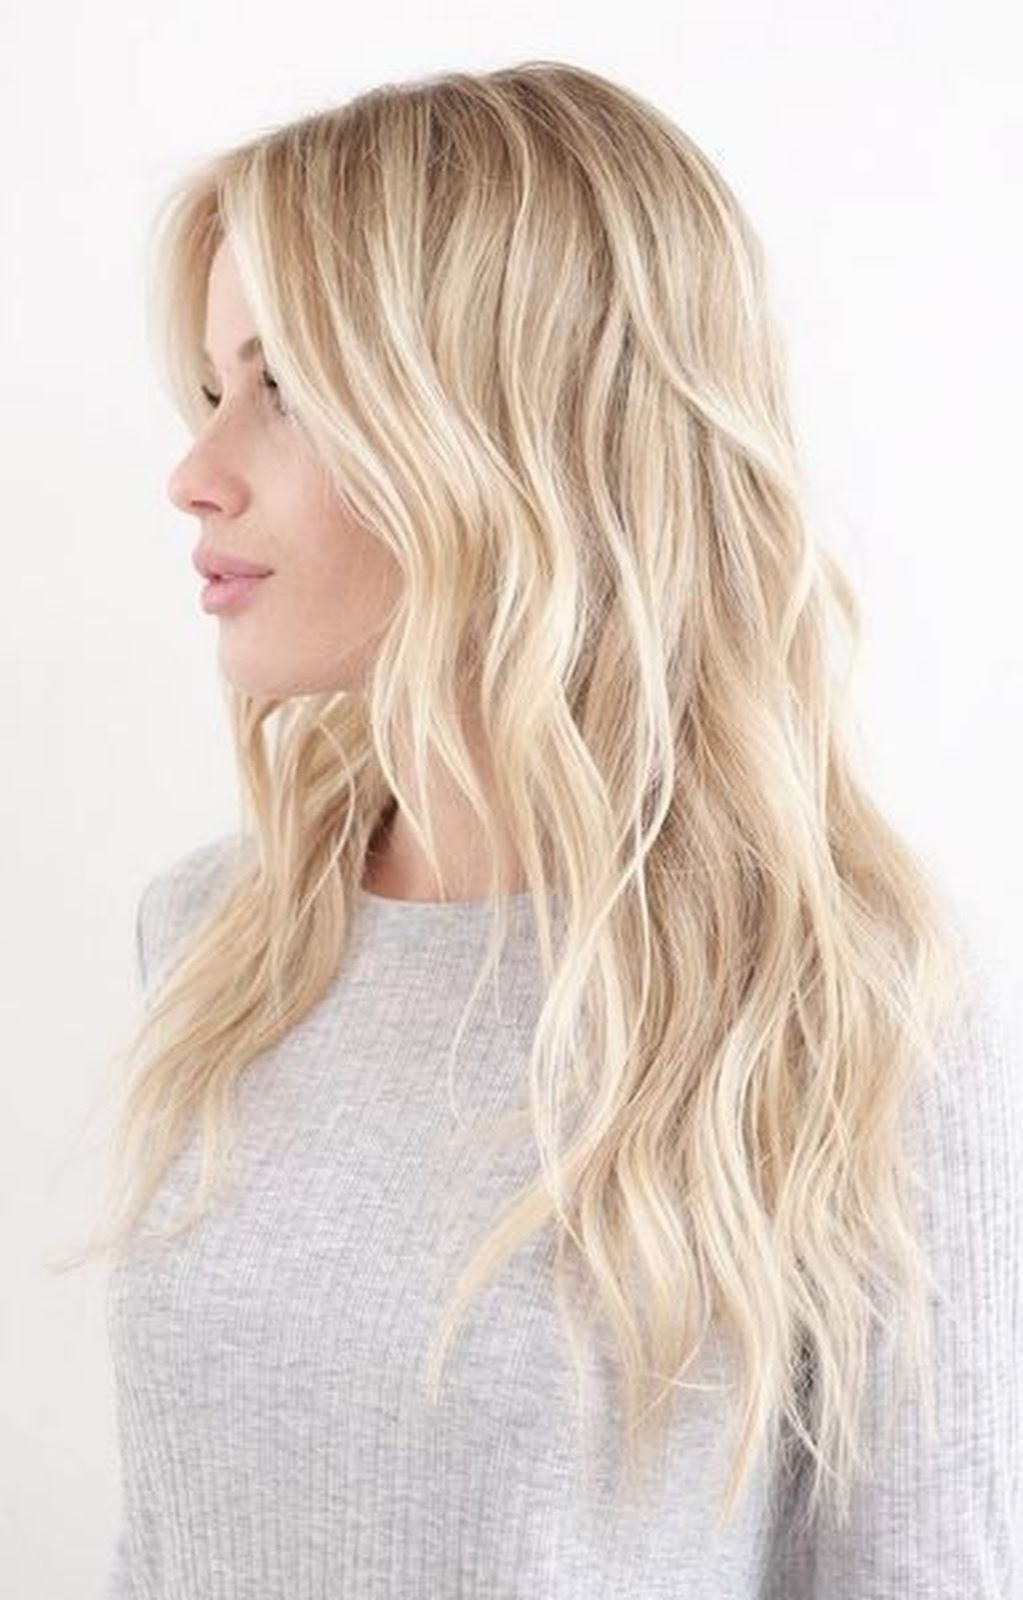 Hot Blonde Balayage Hairstyle Ideas For Any Season 02